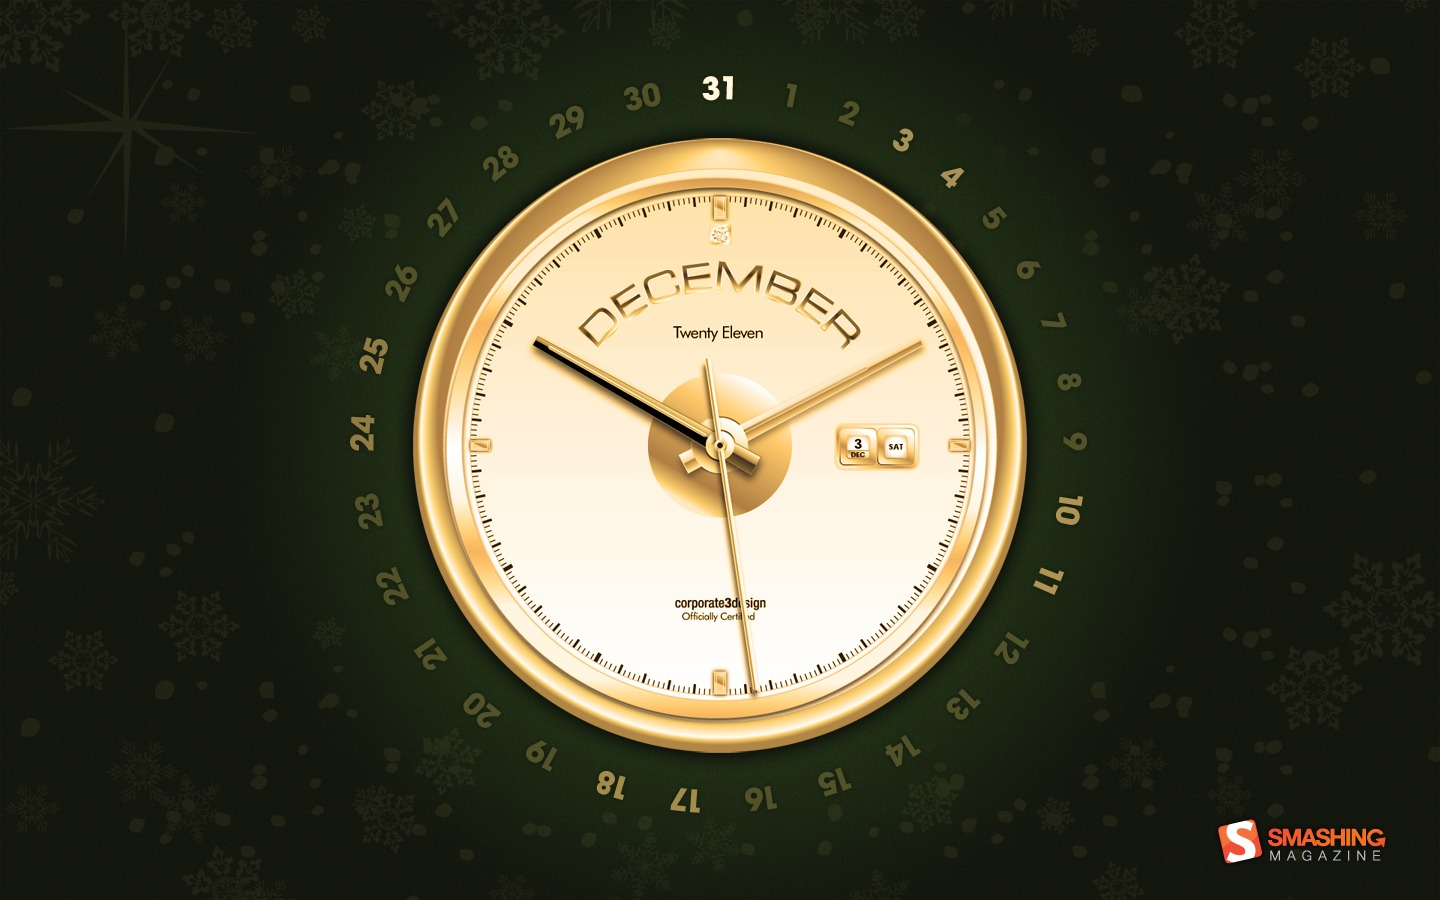 In January Calendar Wallpaper 31205